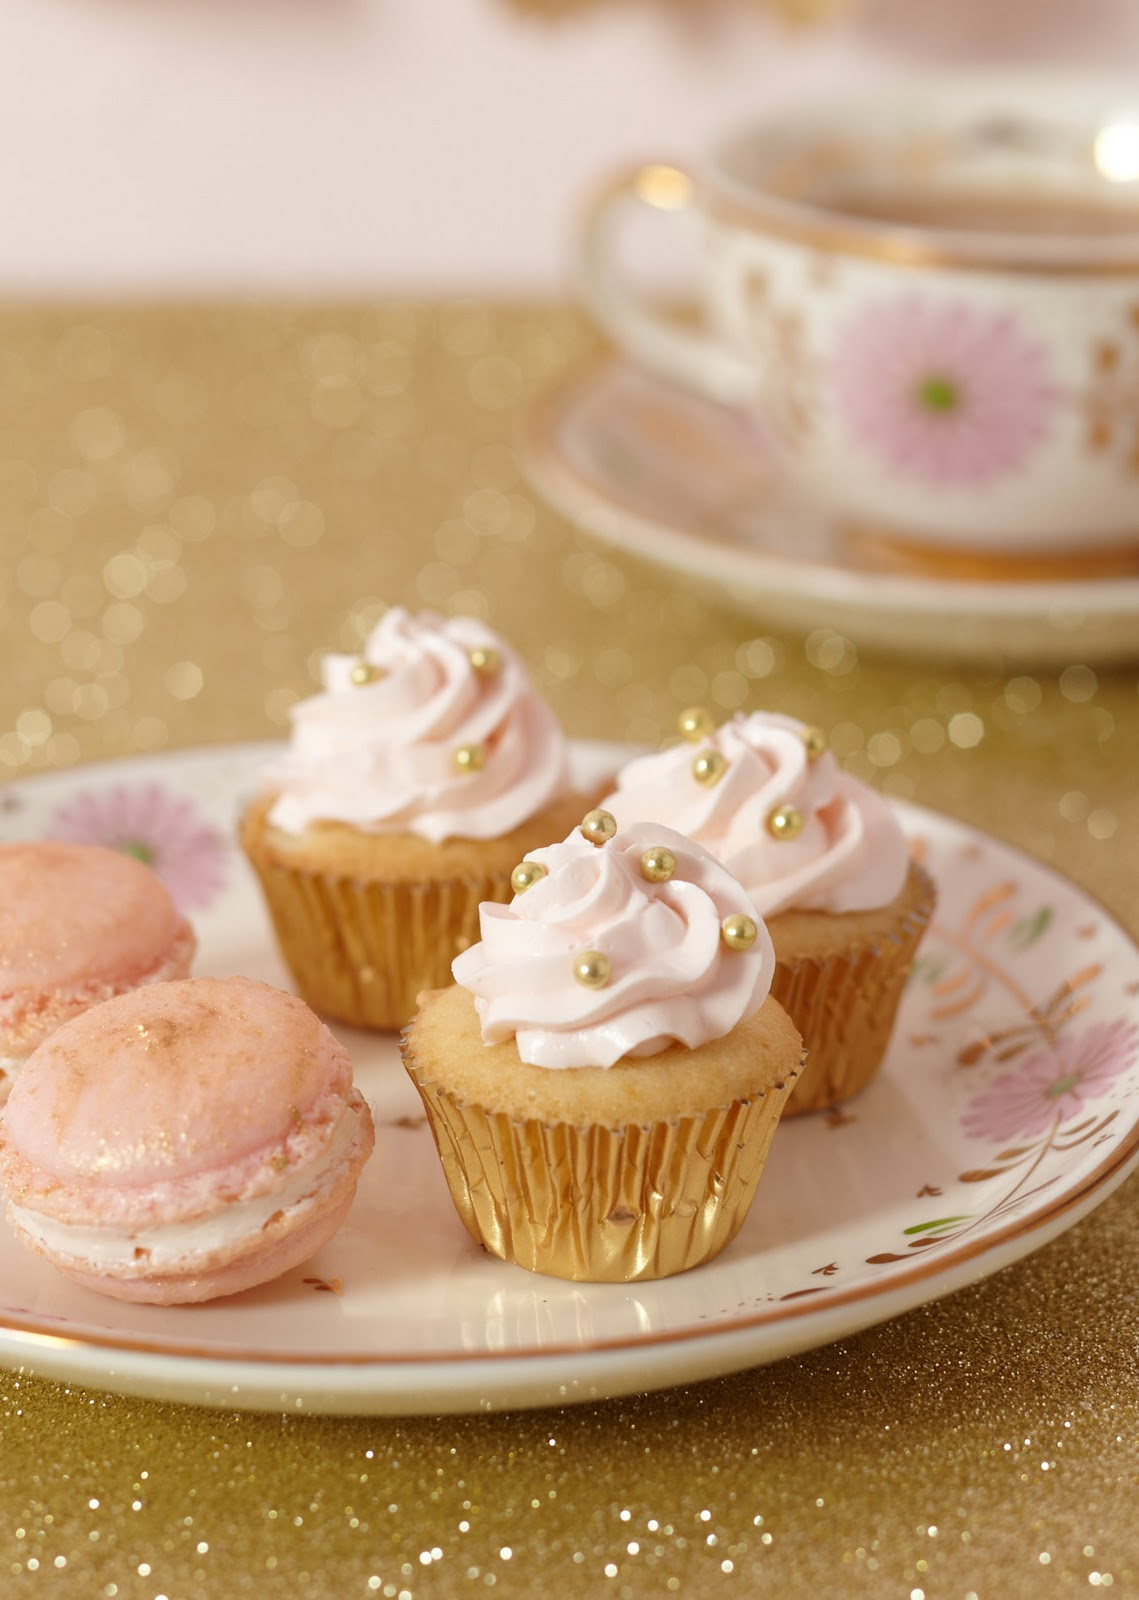 Cakewalk Baking Pink Gold Glittery All Over The Sweets